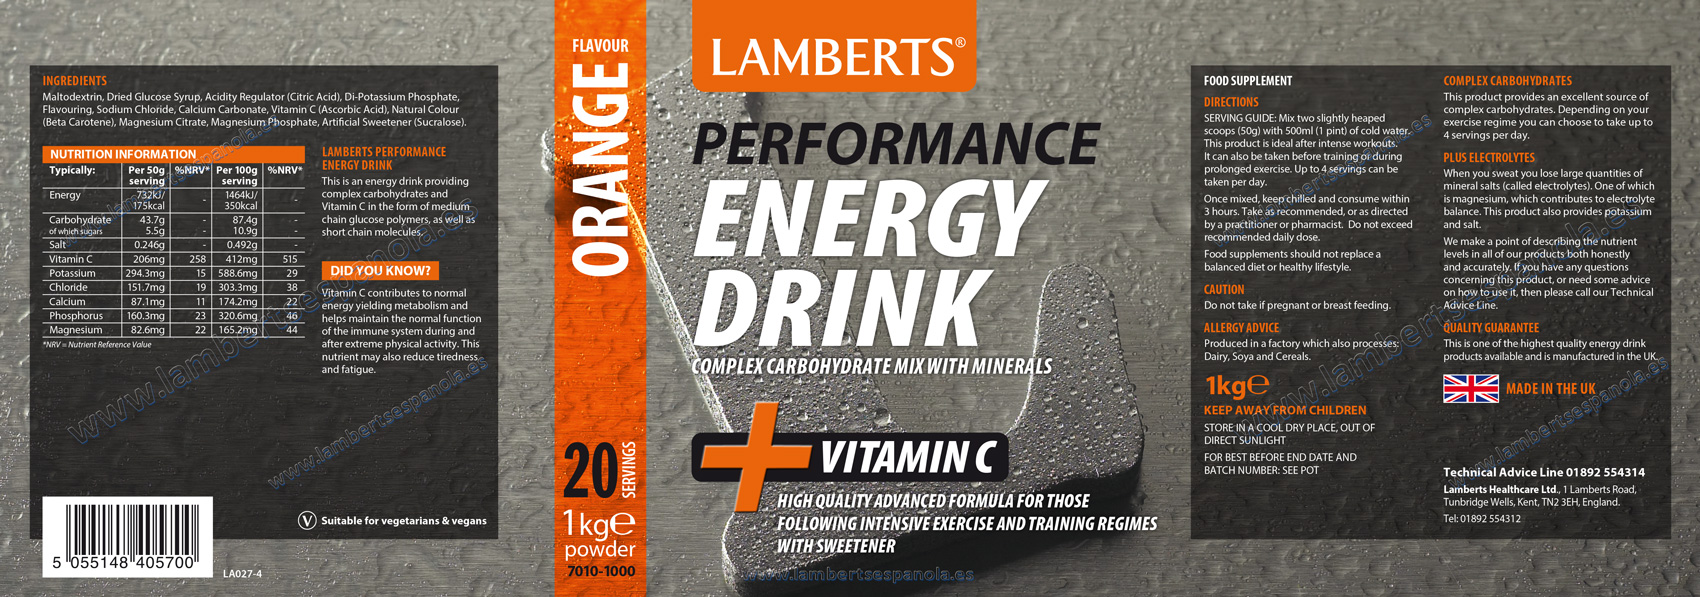 Lamberts Energy drink properties